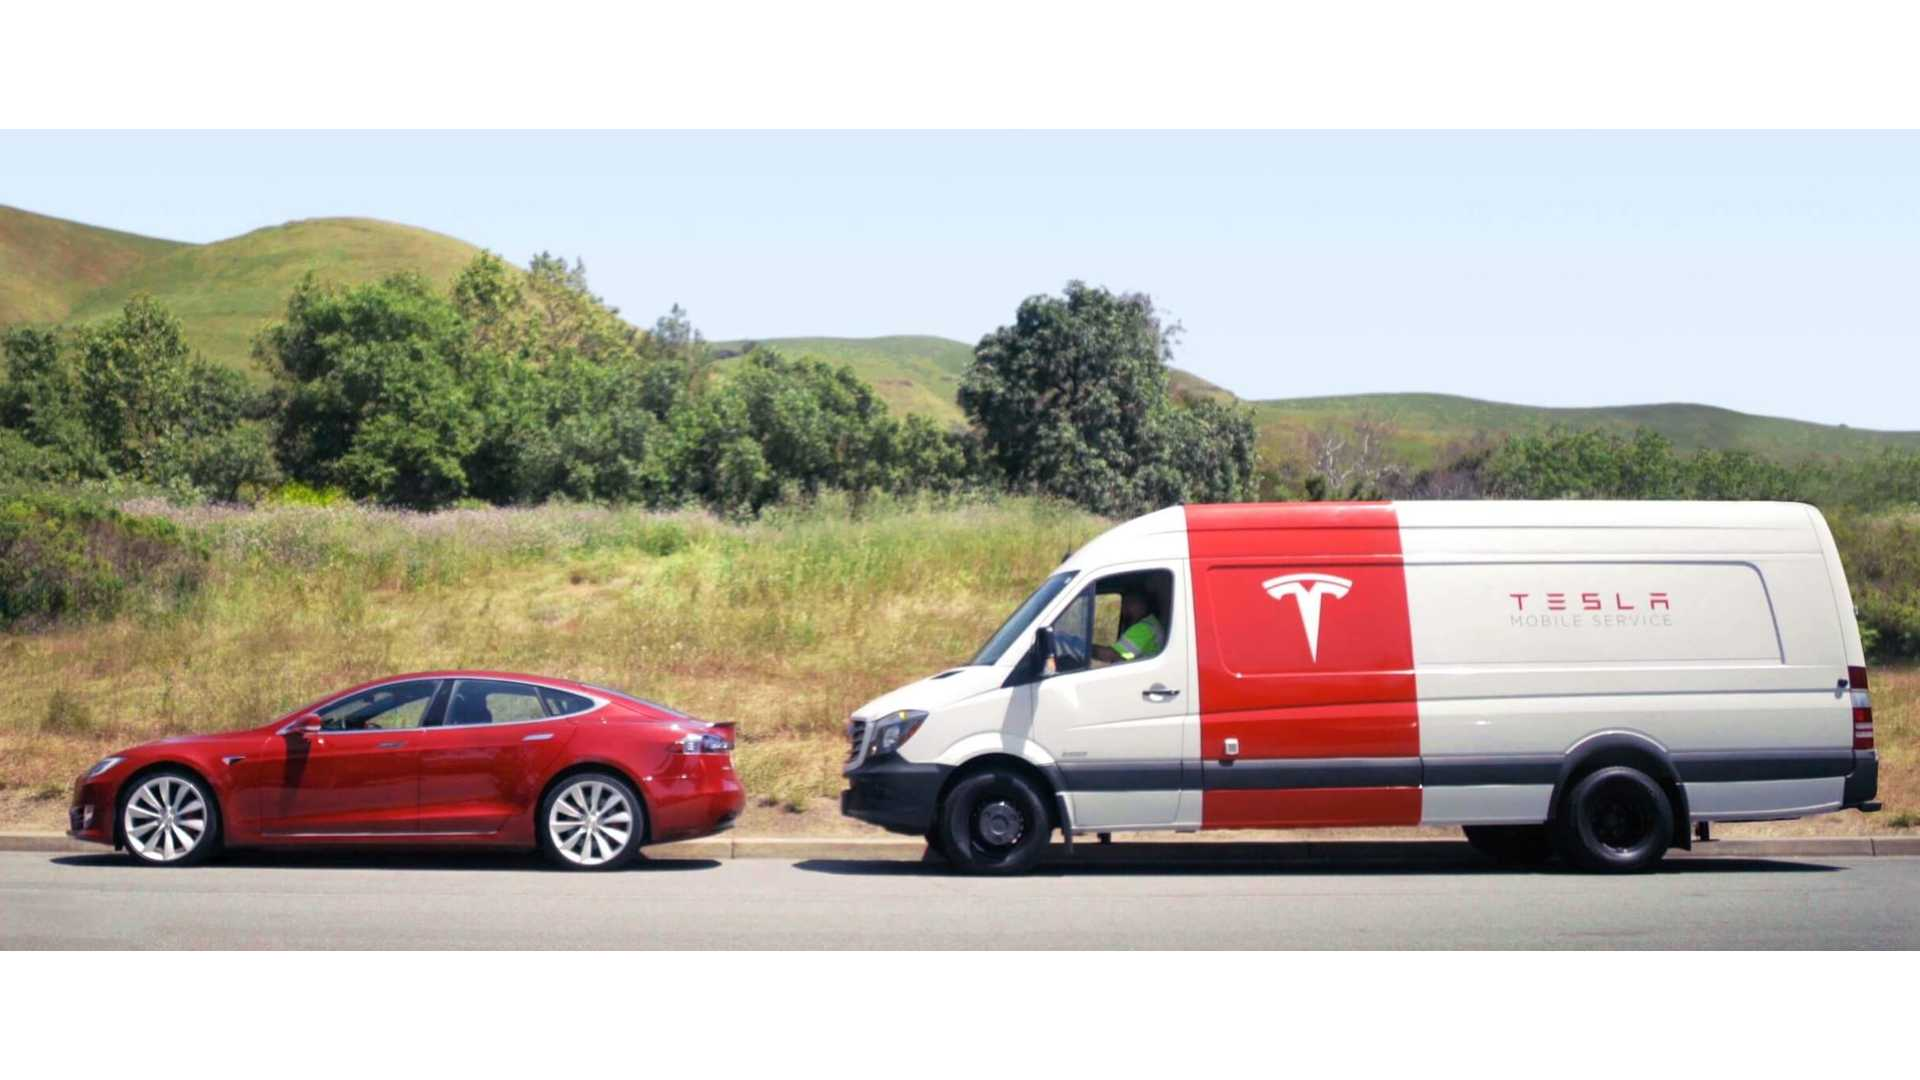 Tesla S New Mobile Service Vehicles Will Be Electric Bout Time